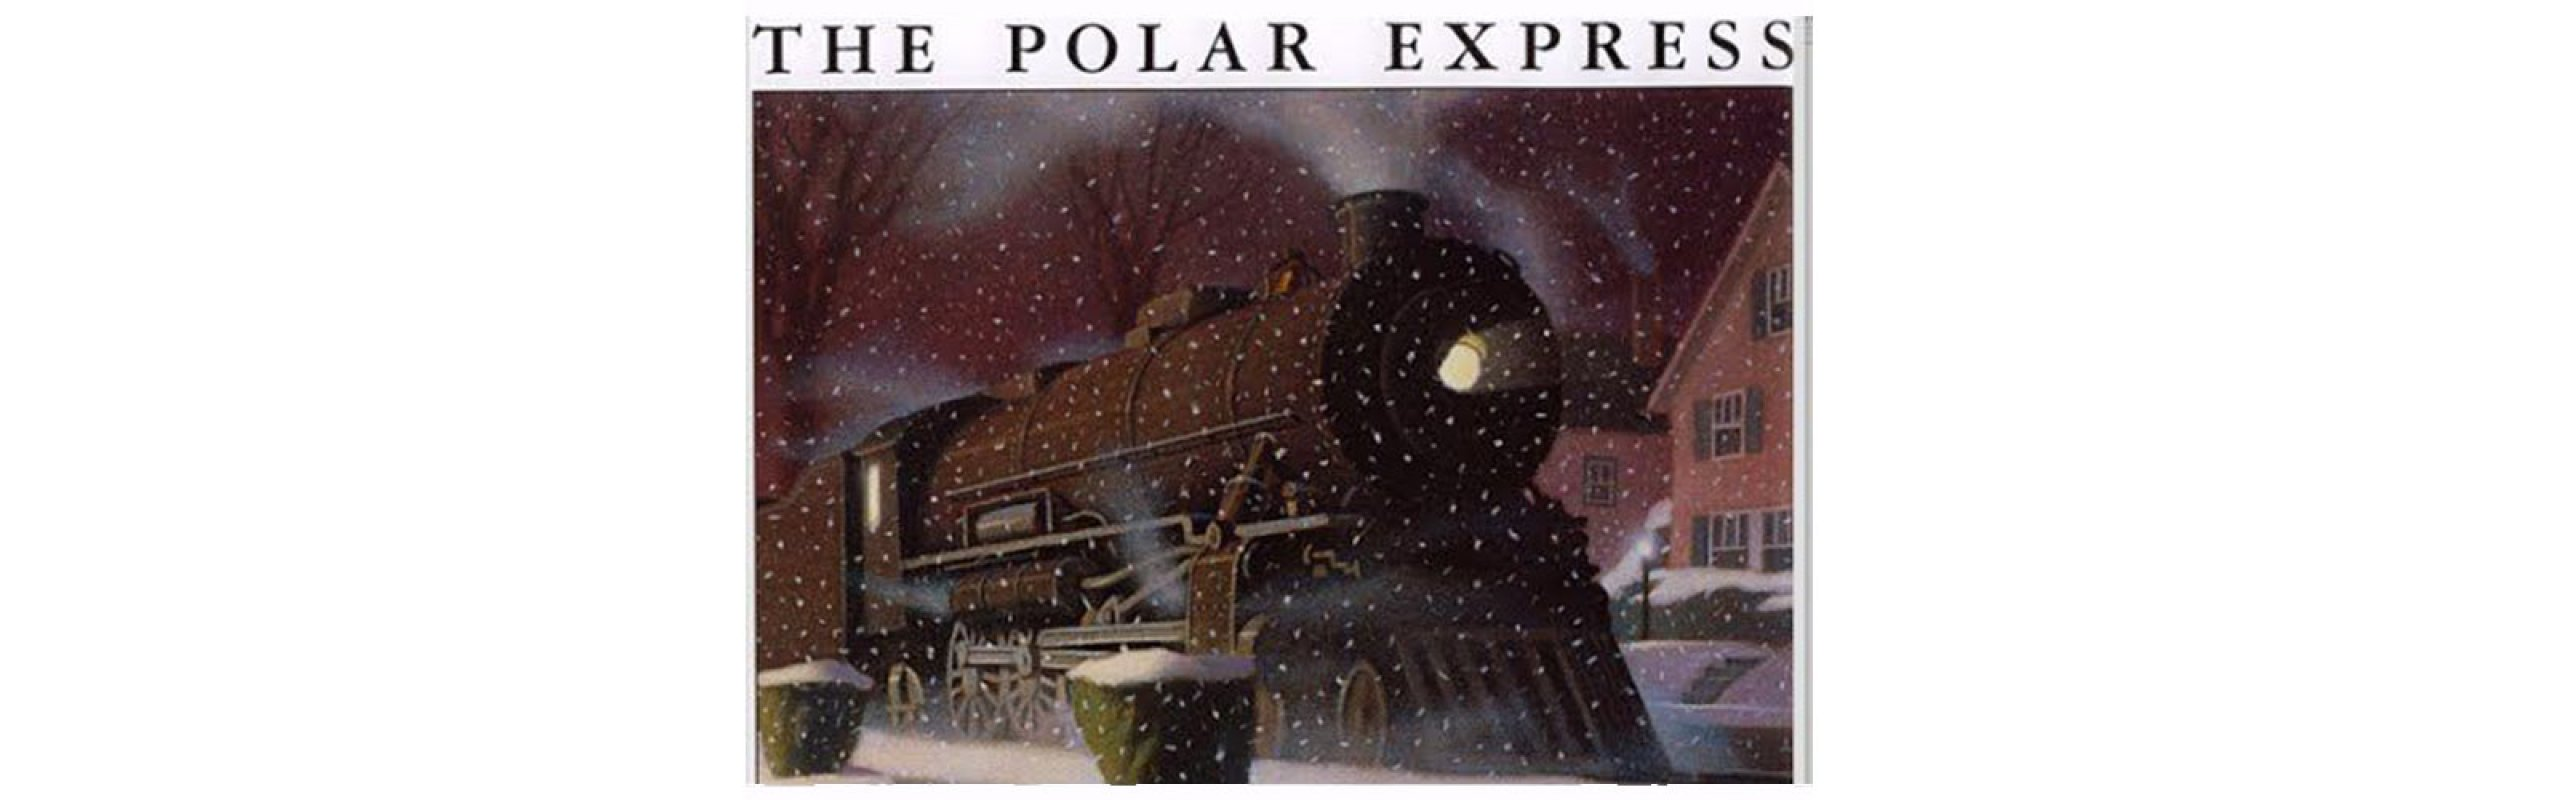 It's Storytime! The Polar Express by Chris Van Allsburg